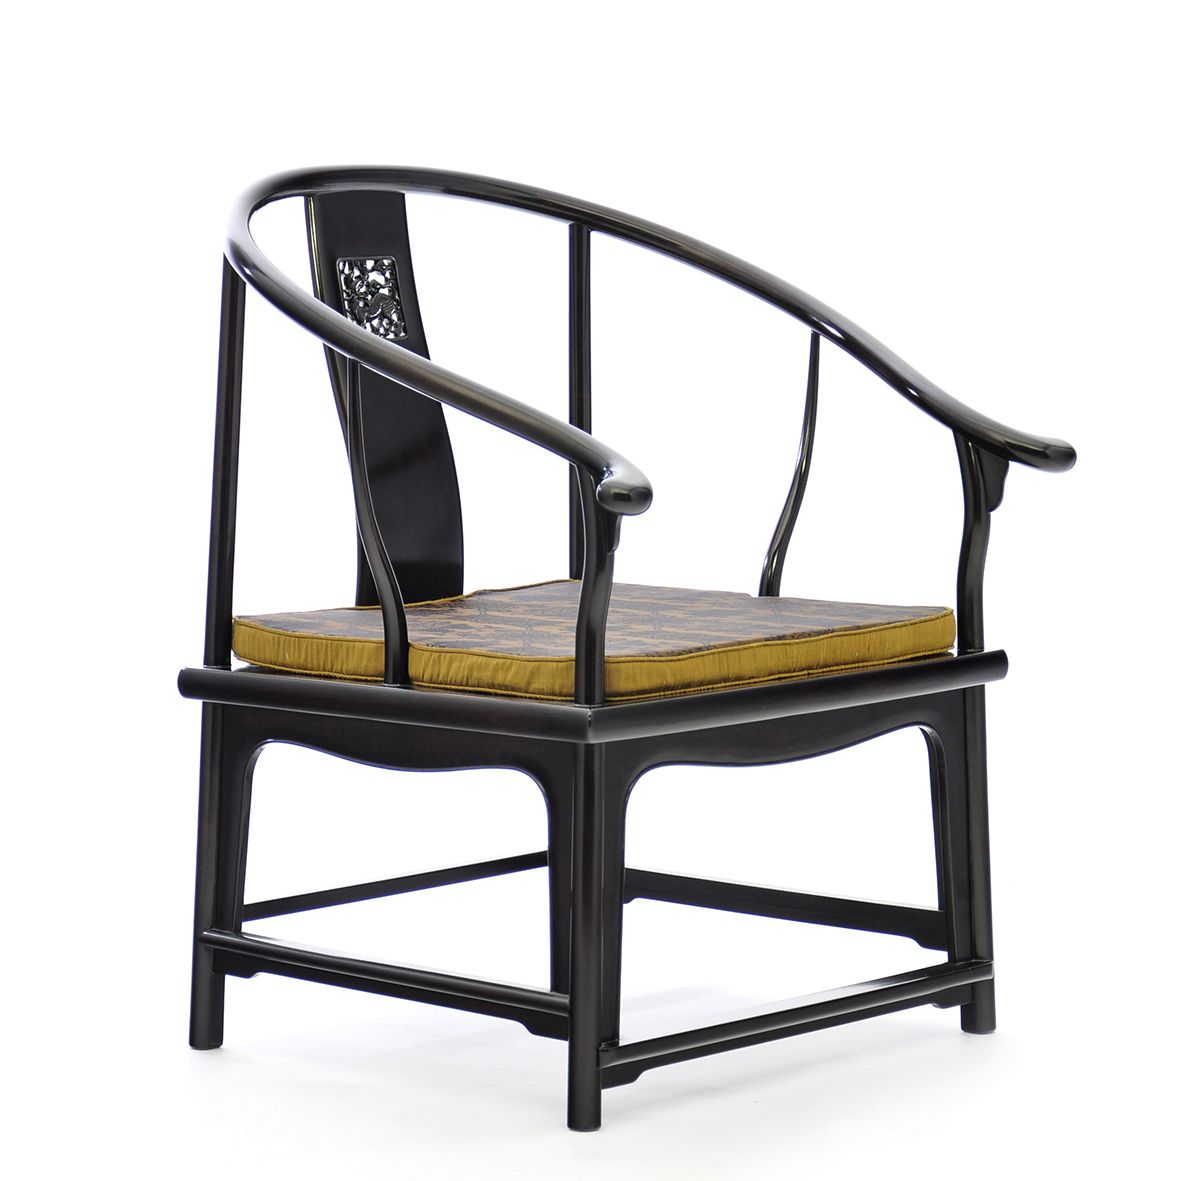 Pleasant Modern Ming Chair 2 Chinese Furniture Furniture Gmtry Best Dining Table And Chair Ideas Images Gmtryco